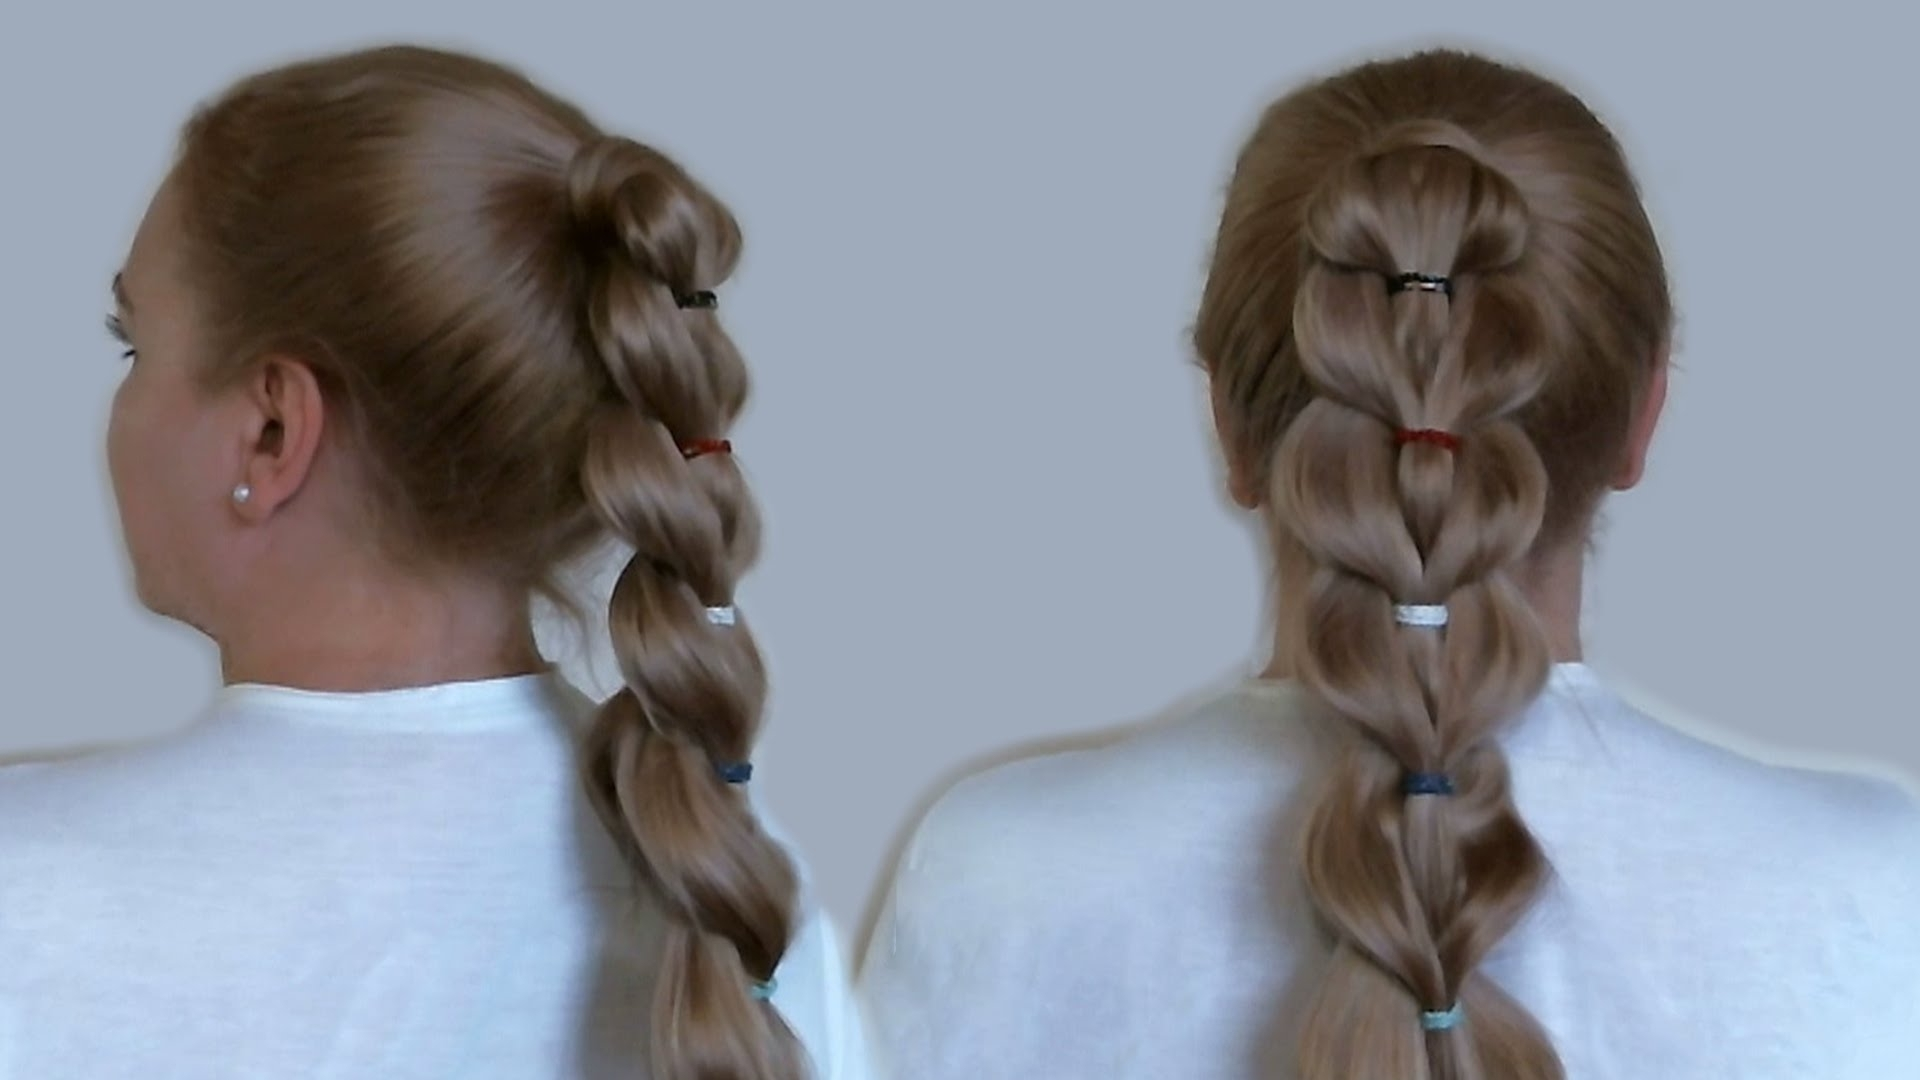 Favorite Braid Hairstyles With Rubber Bands Within Unique Braid: Ponytail With Rubber Bands (View 6 of 15)